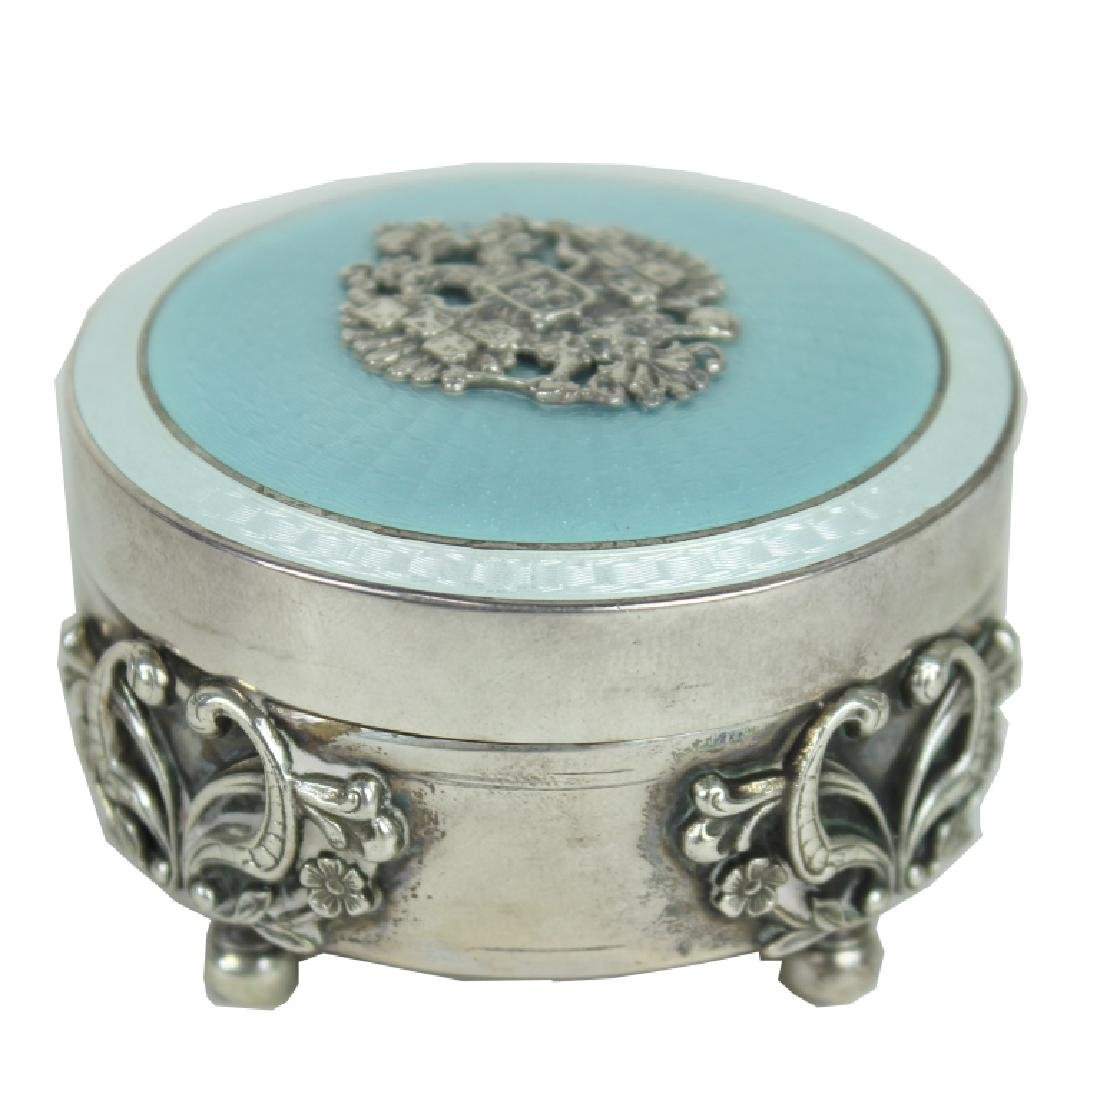 RUSSIAN SILVER ENAMEL TRINKET BOX